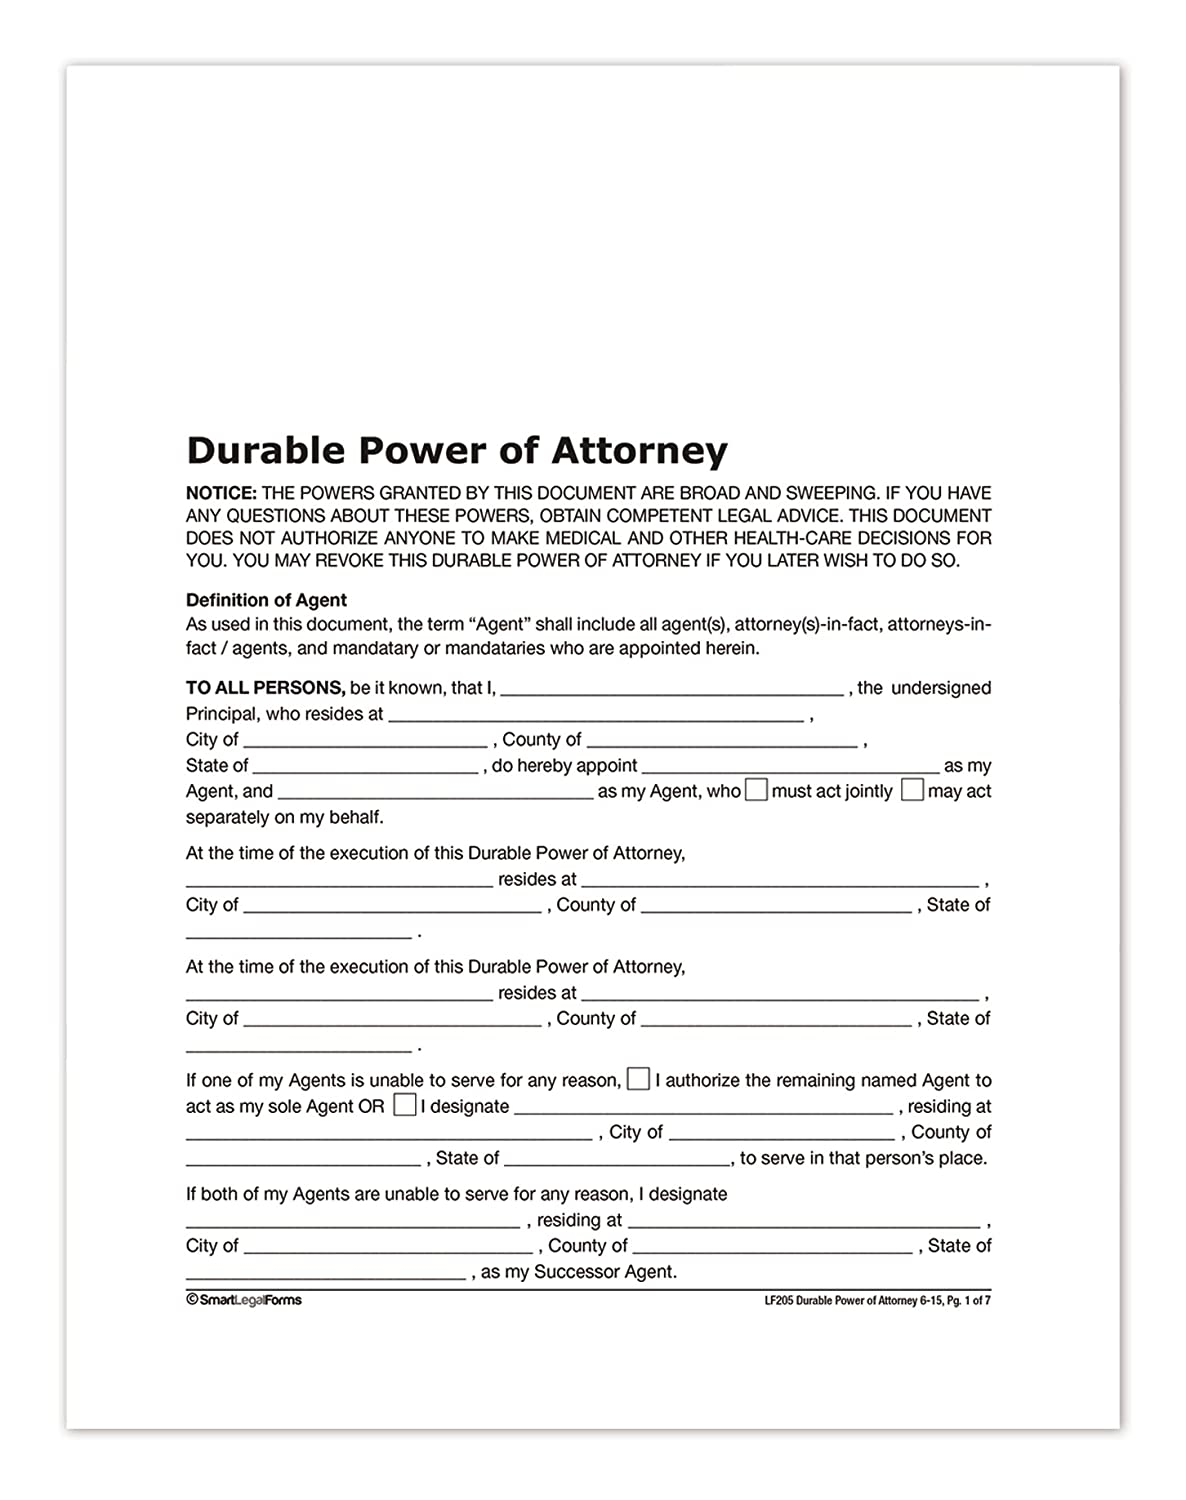 amazon com adams durable power of attorney forms and instructions